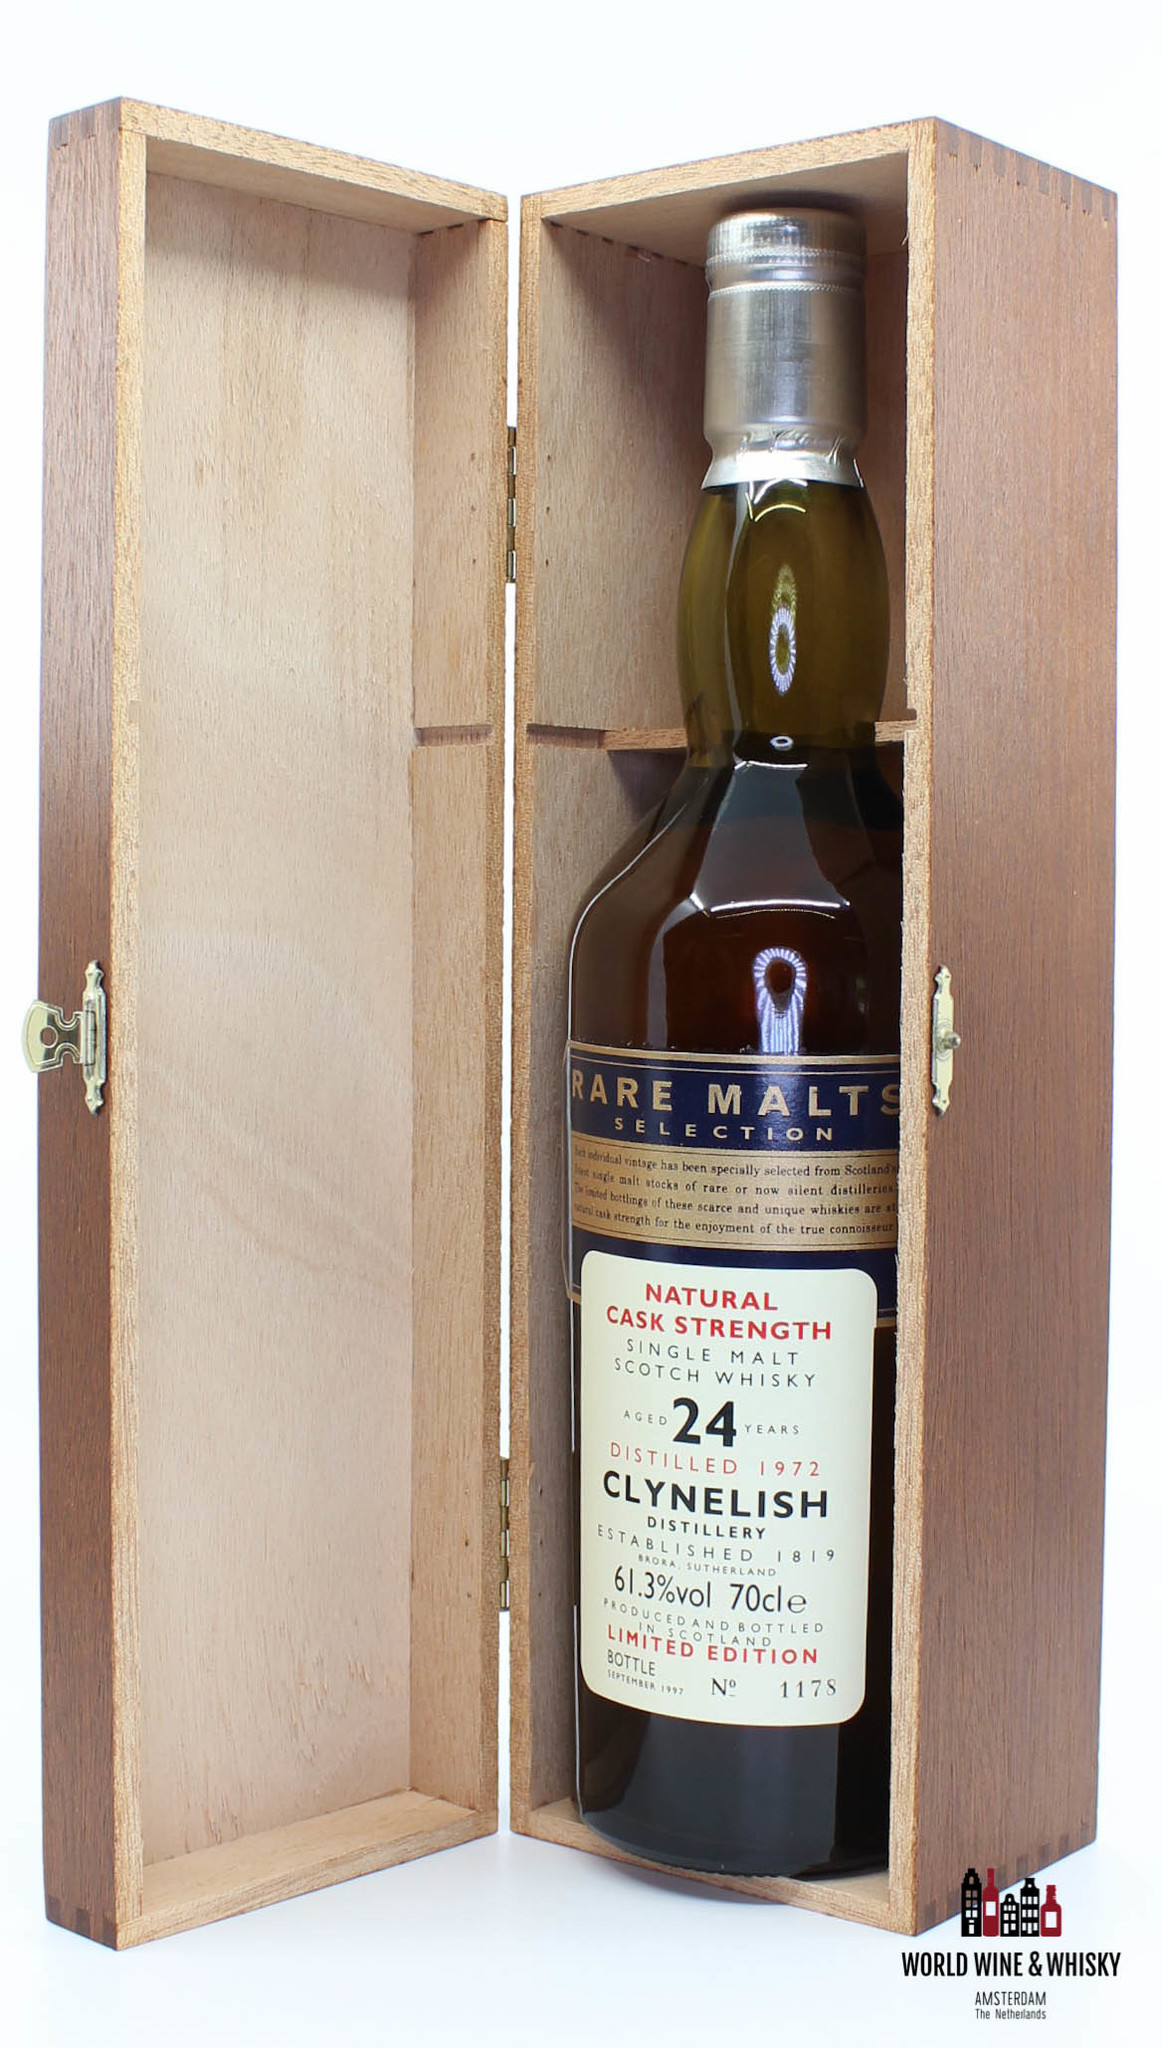 Clynelish Clynelish 24 Years Old 1972 1997 Rare Malts Selection 61.3% (in wooden box)